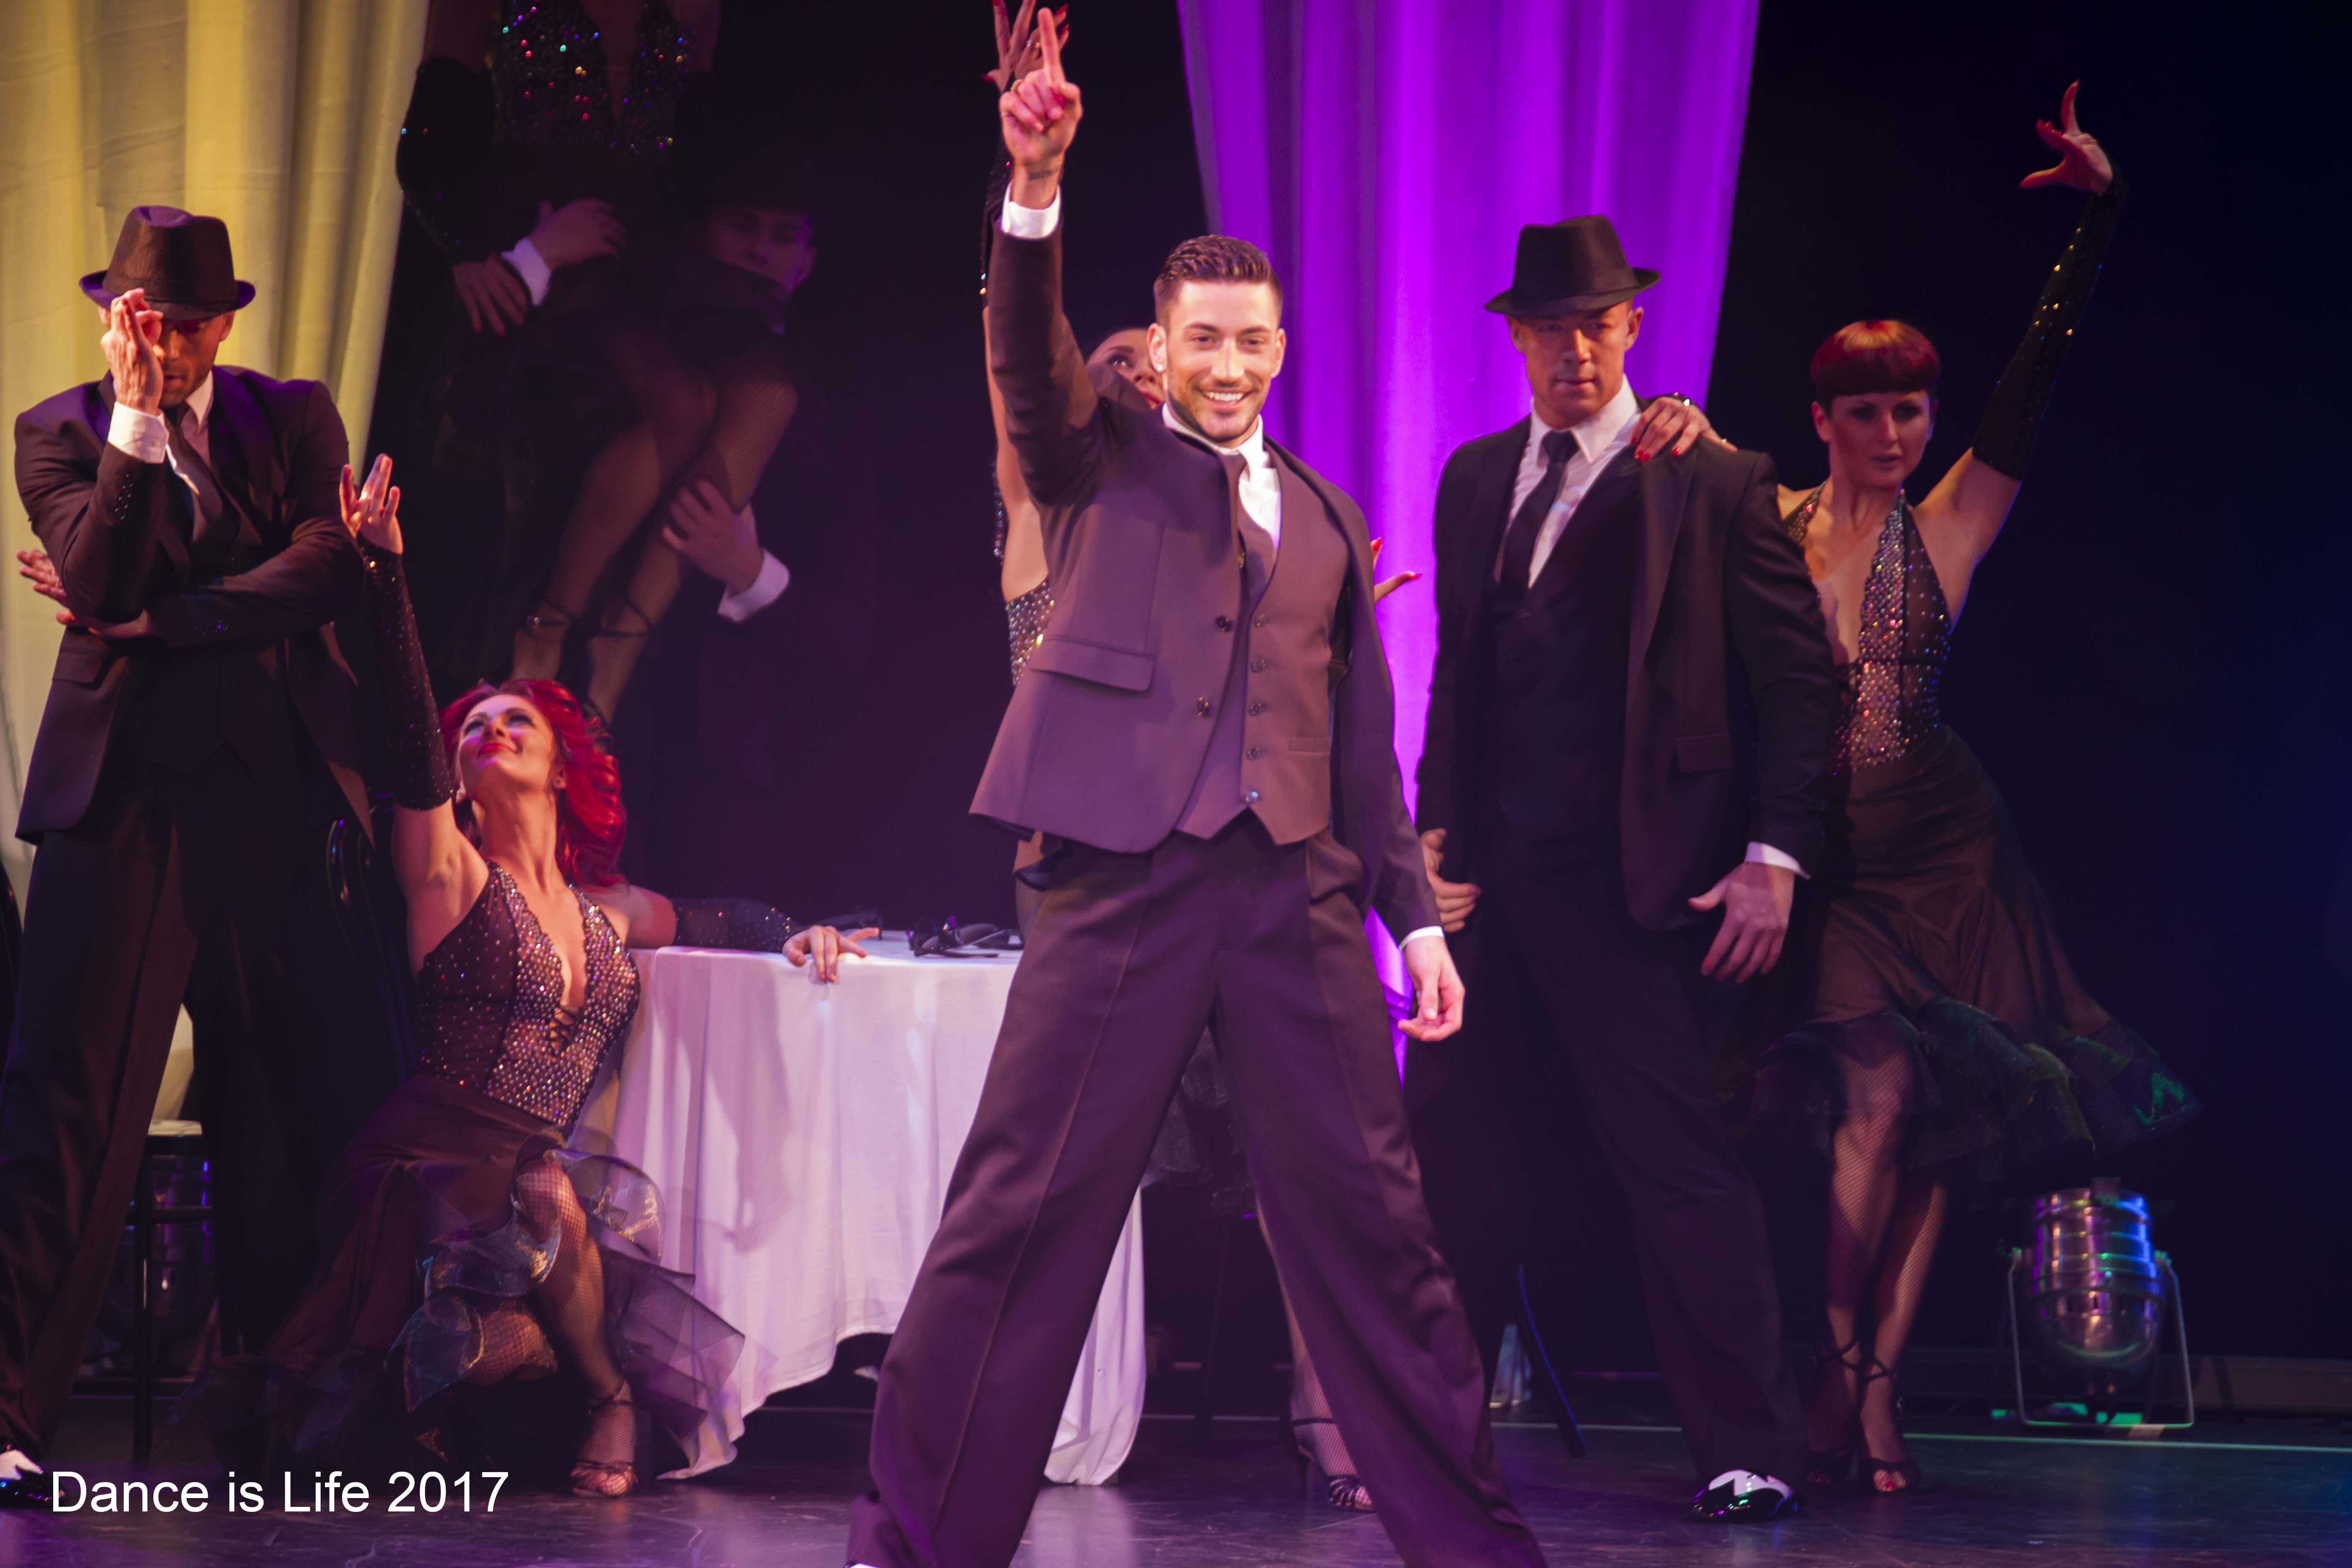 Giovanni Pernice on his last tour - Dance is Life